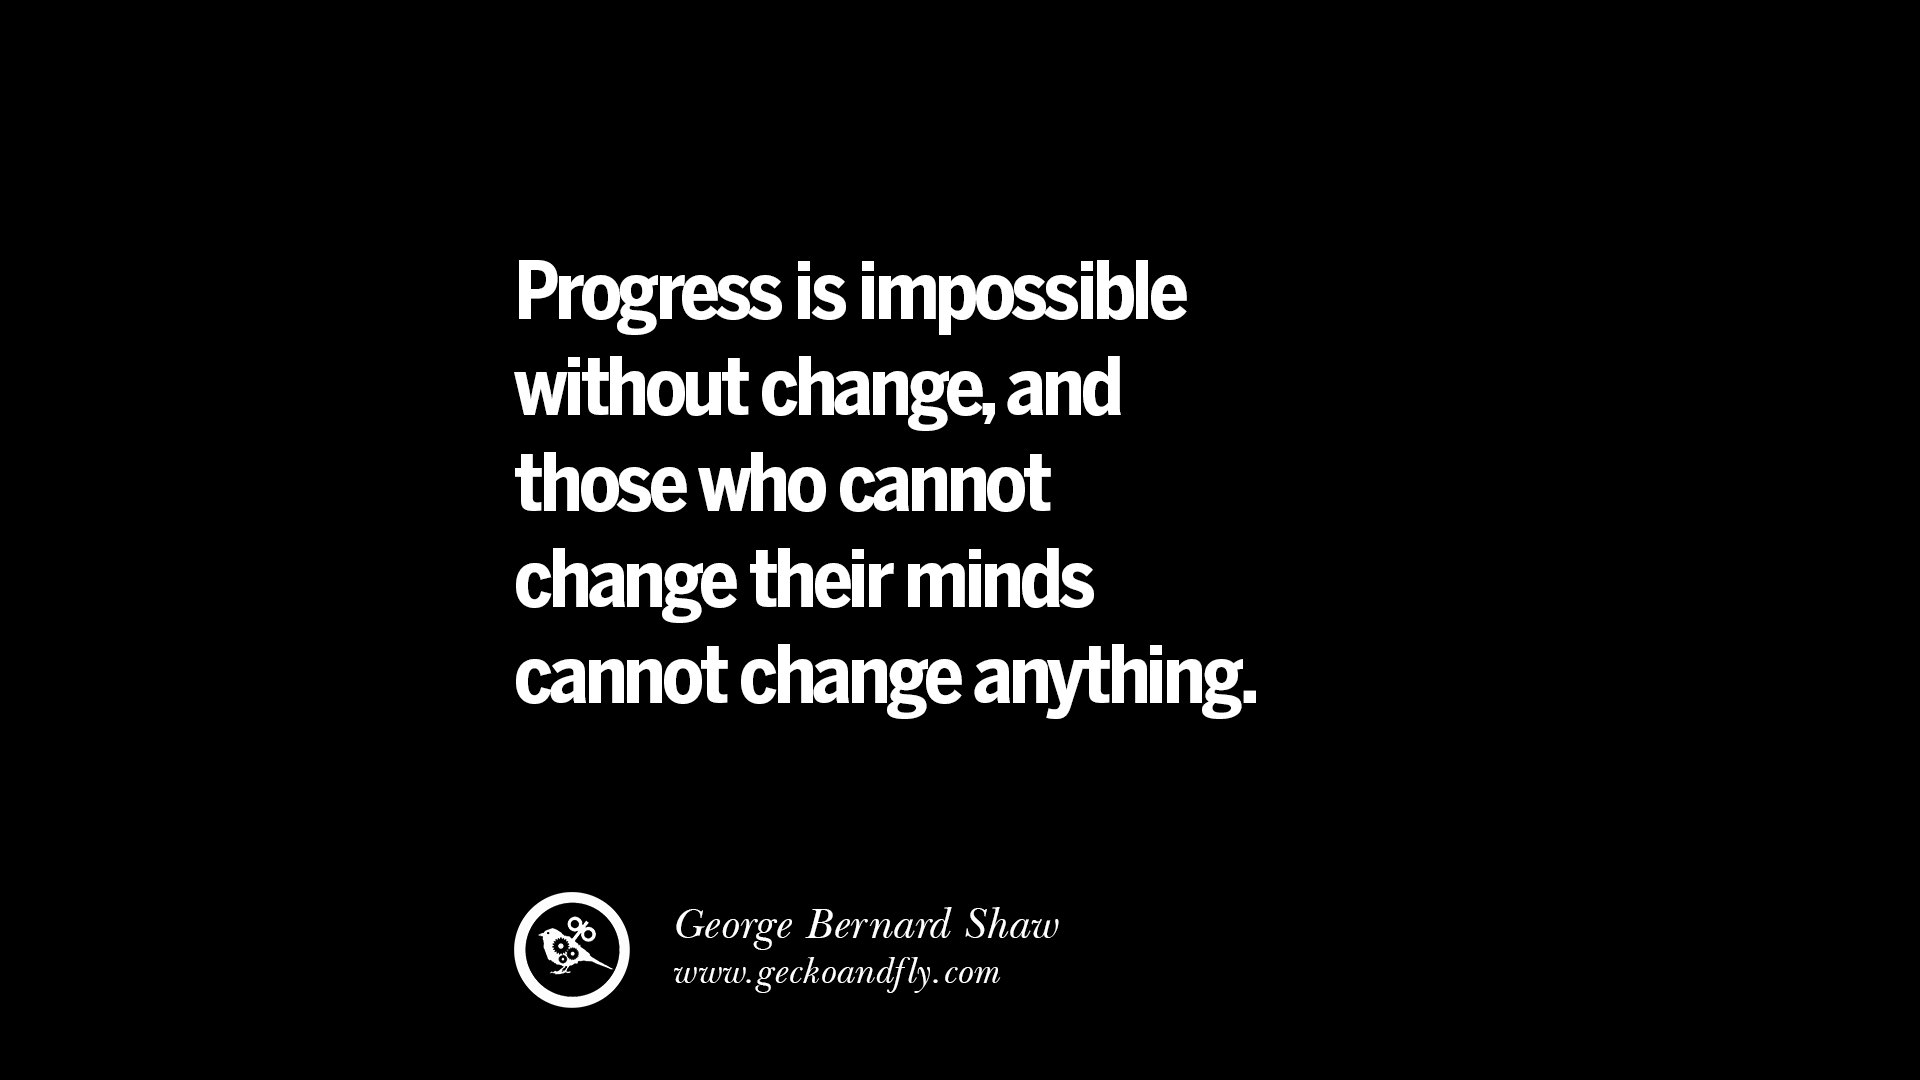 Quotes About Progress 45 Quotes On Change And Changing Our Attitudes  Geckoandfly 2018